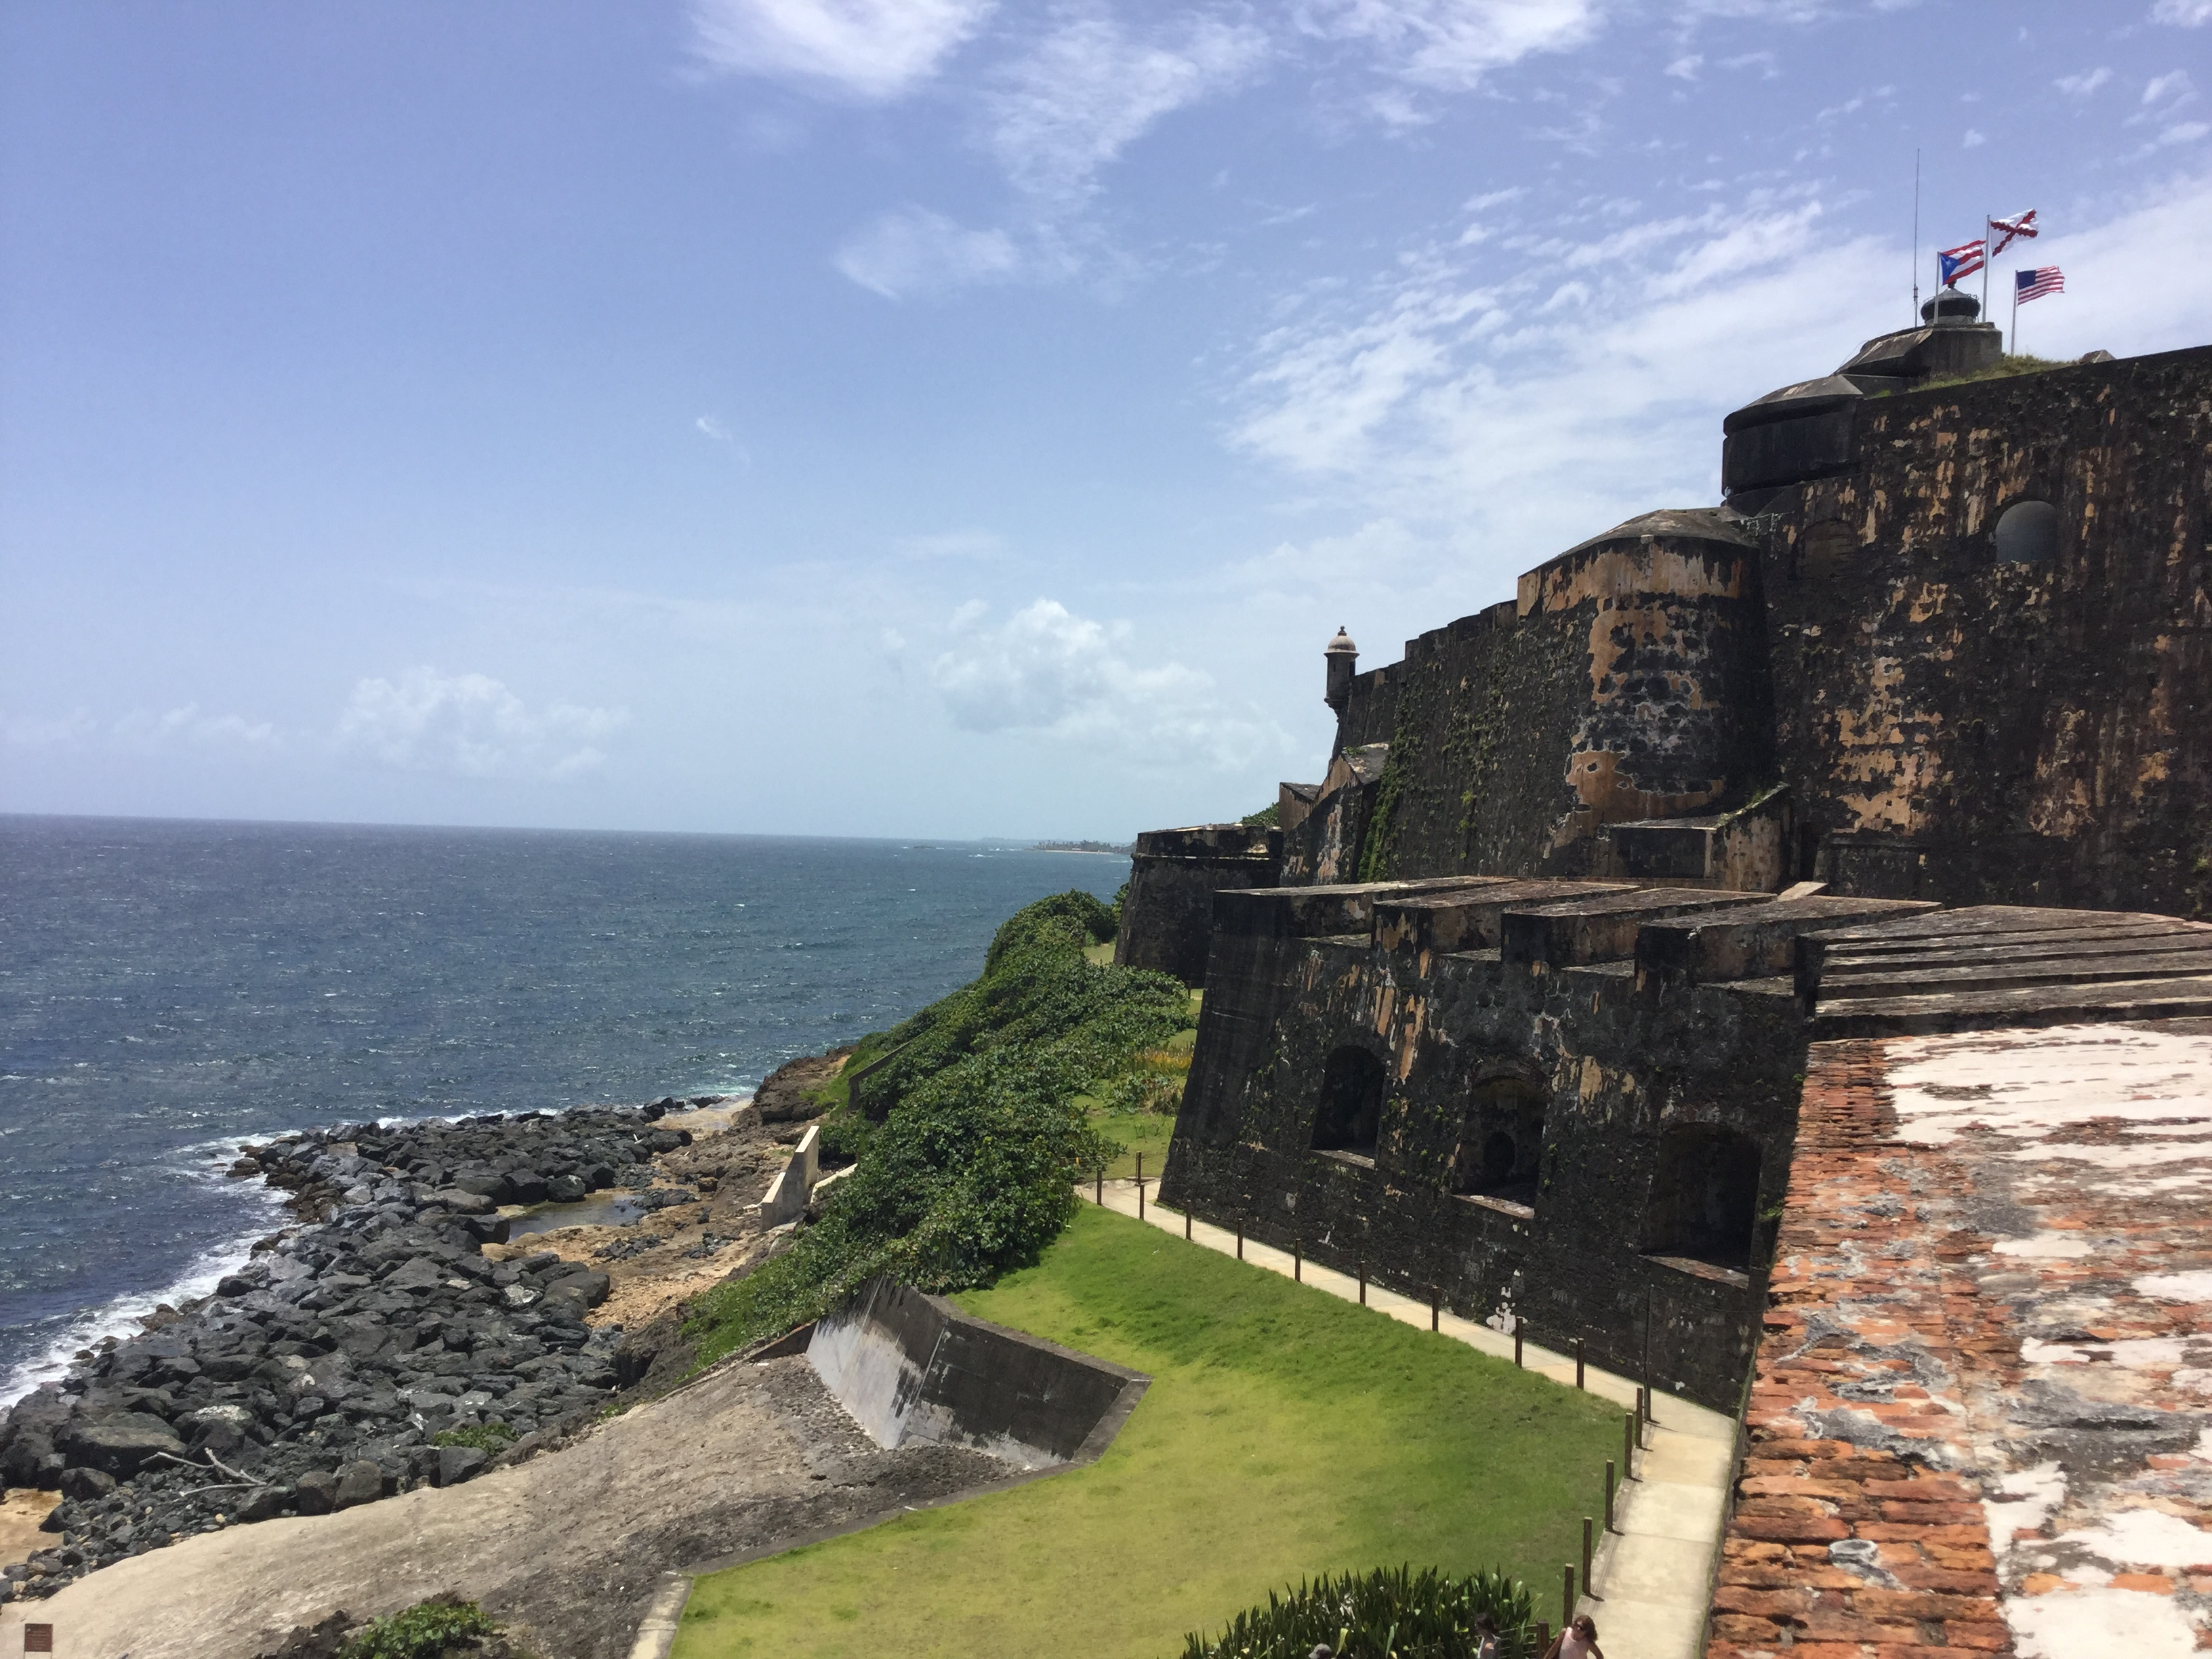 El Morro is one of the top attractions in San Juan